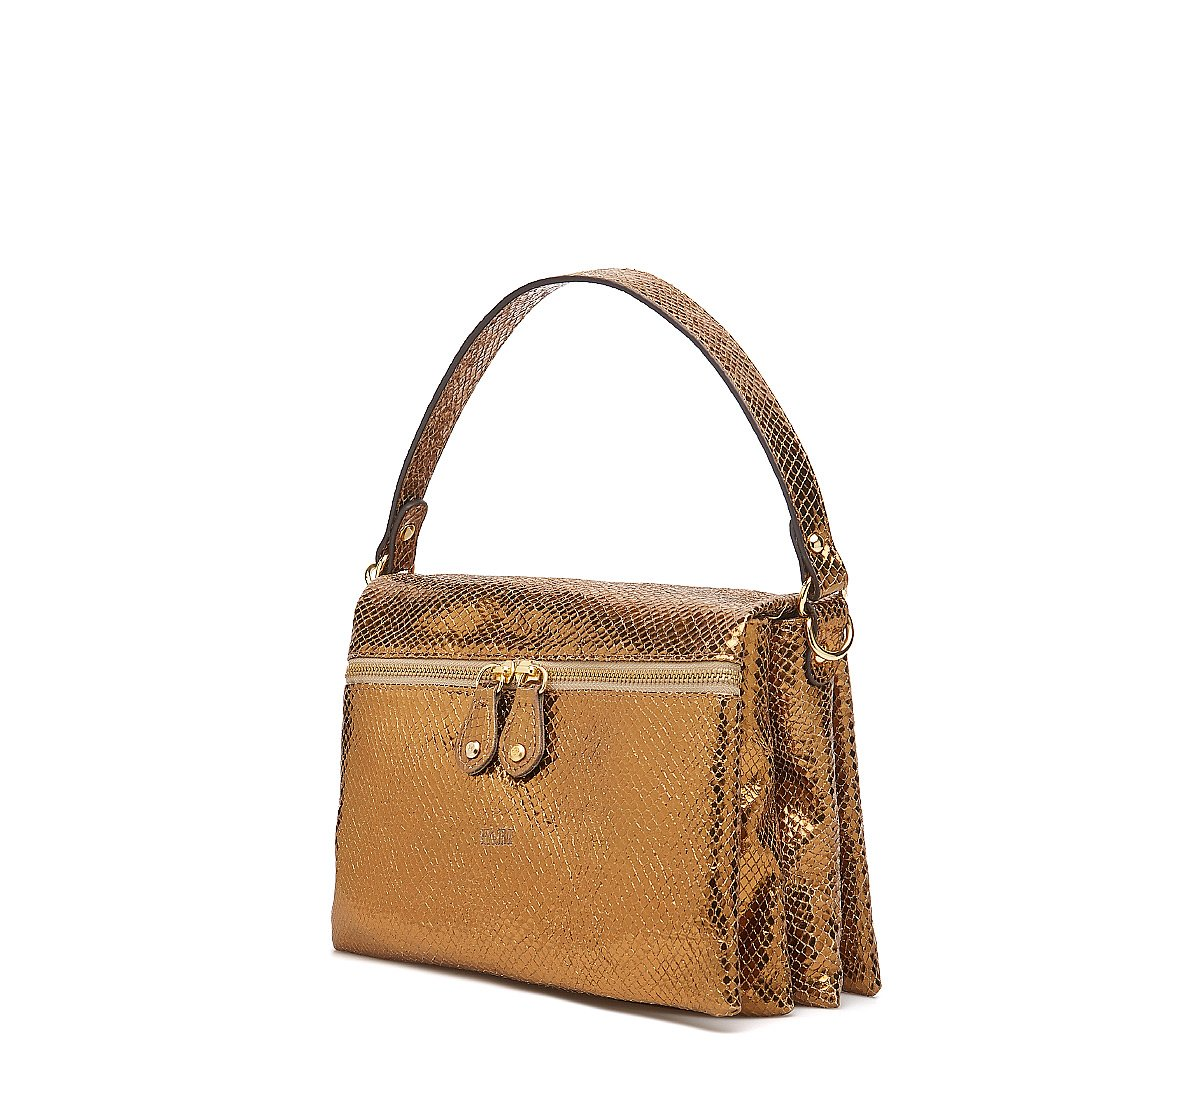 City bag in laminated calf leather